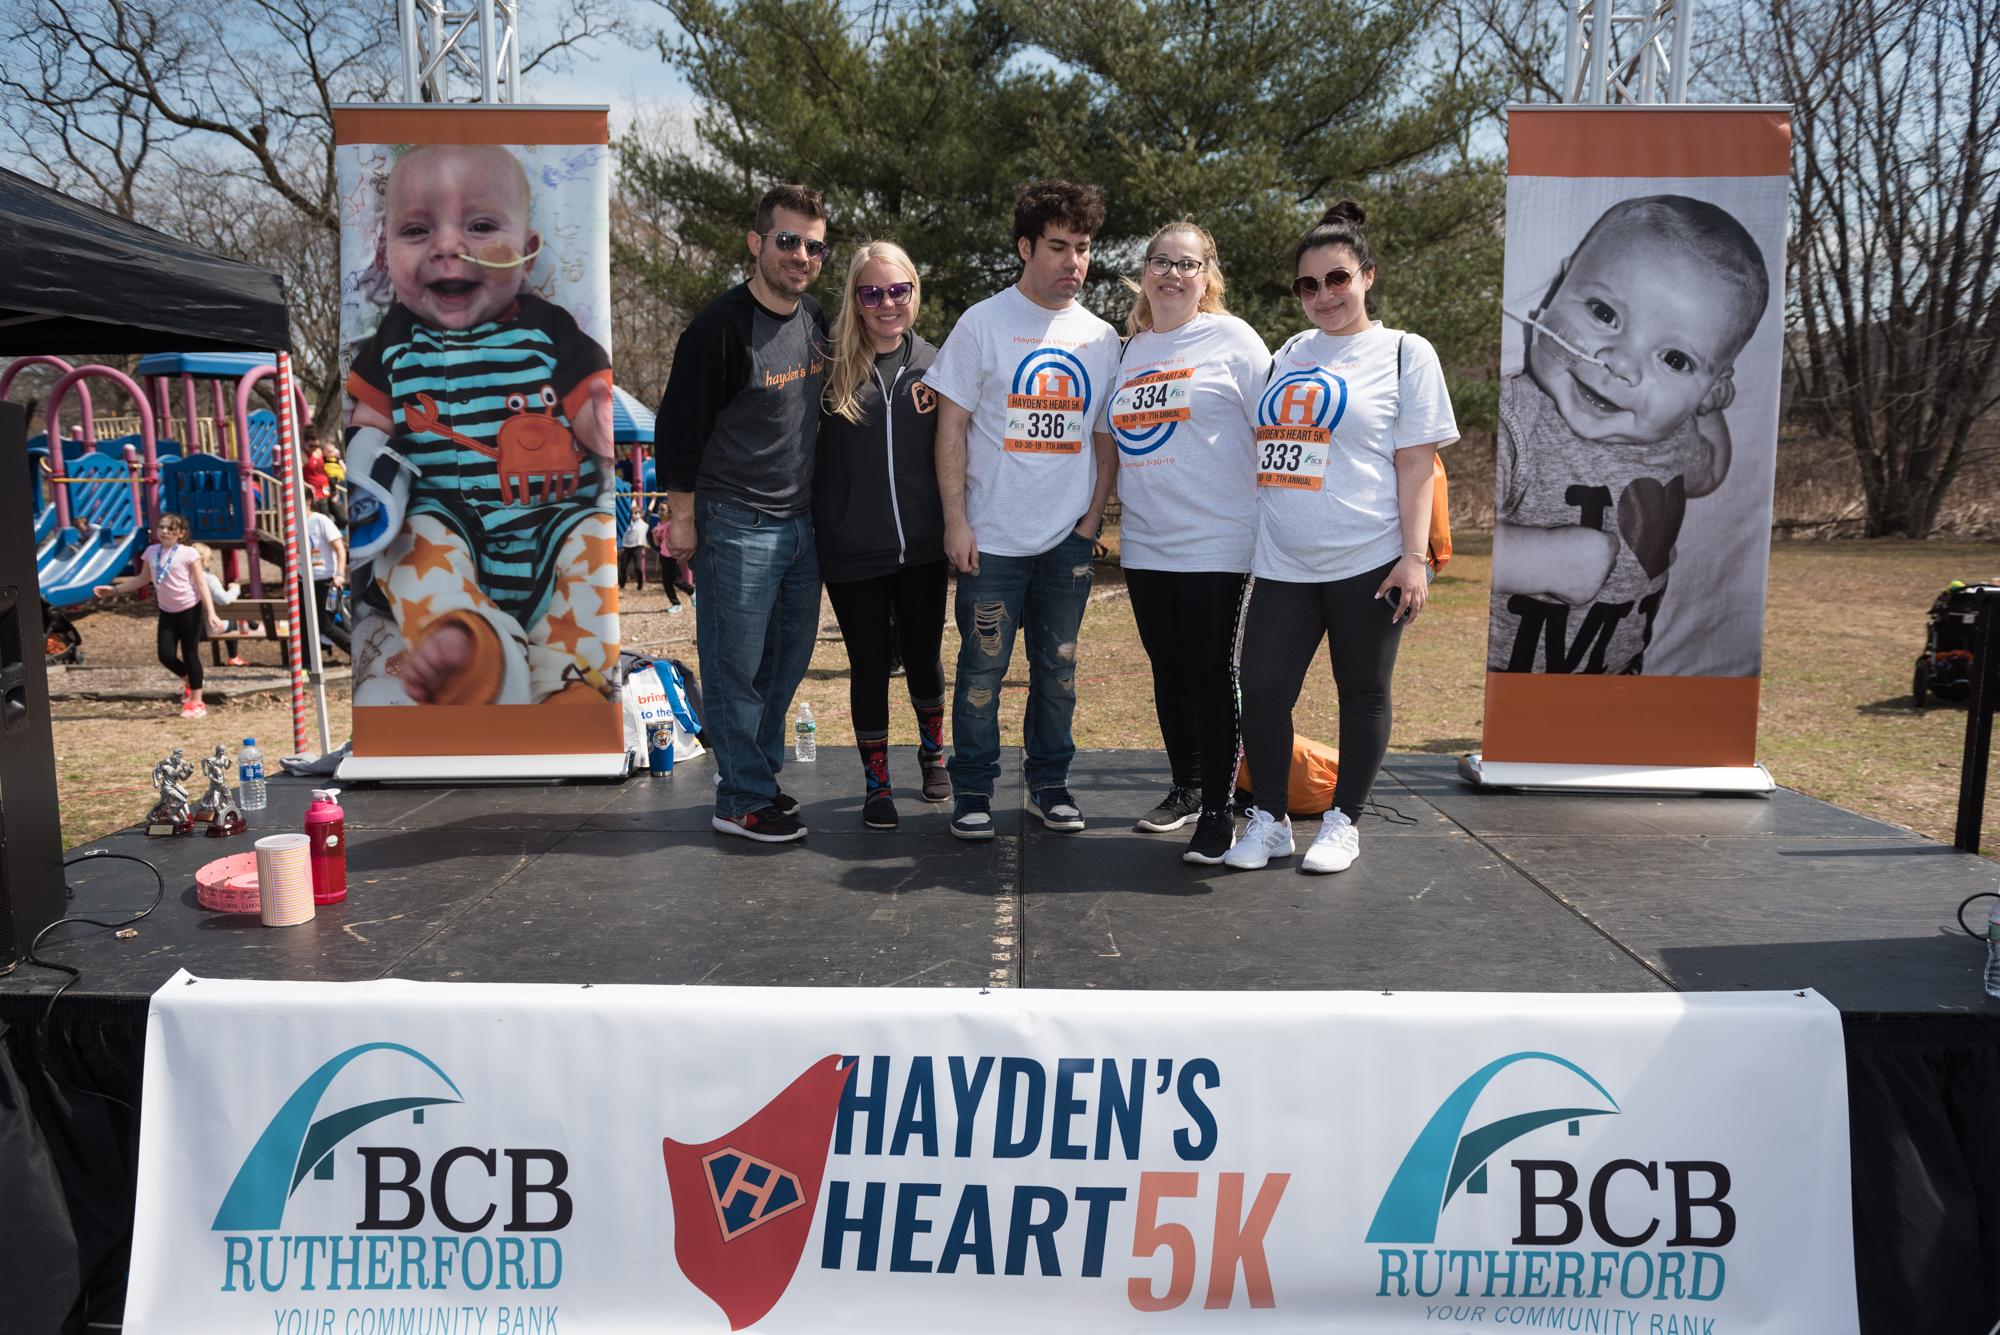 2019-03-30 Haydens Heart 5k - Riverside County Park - North Arlington NJ-412.jpg